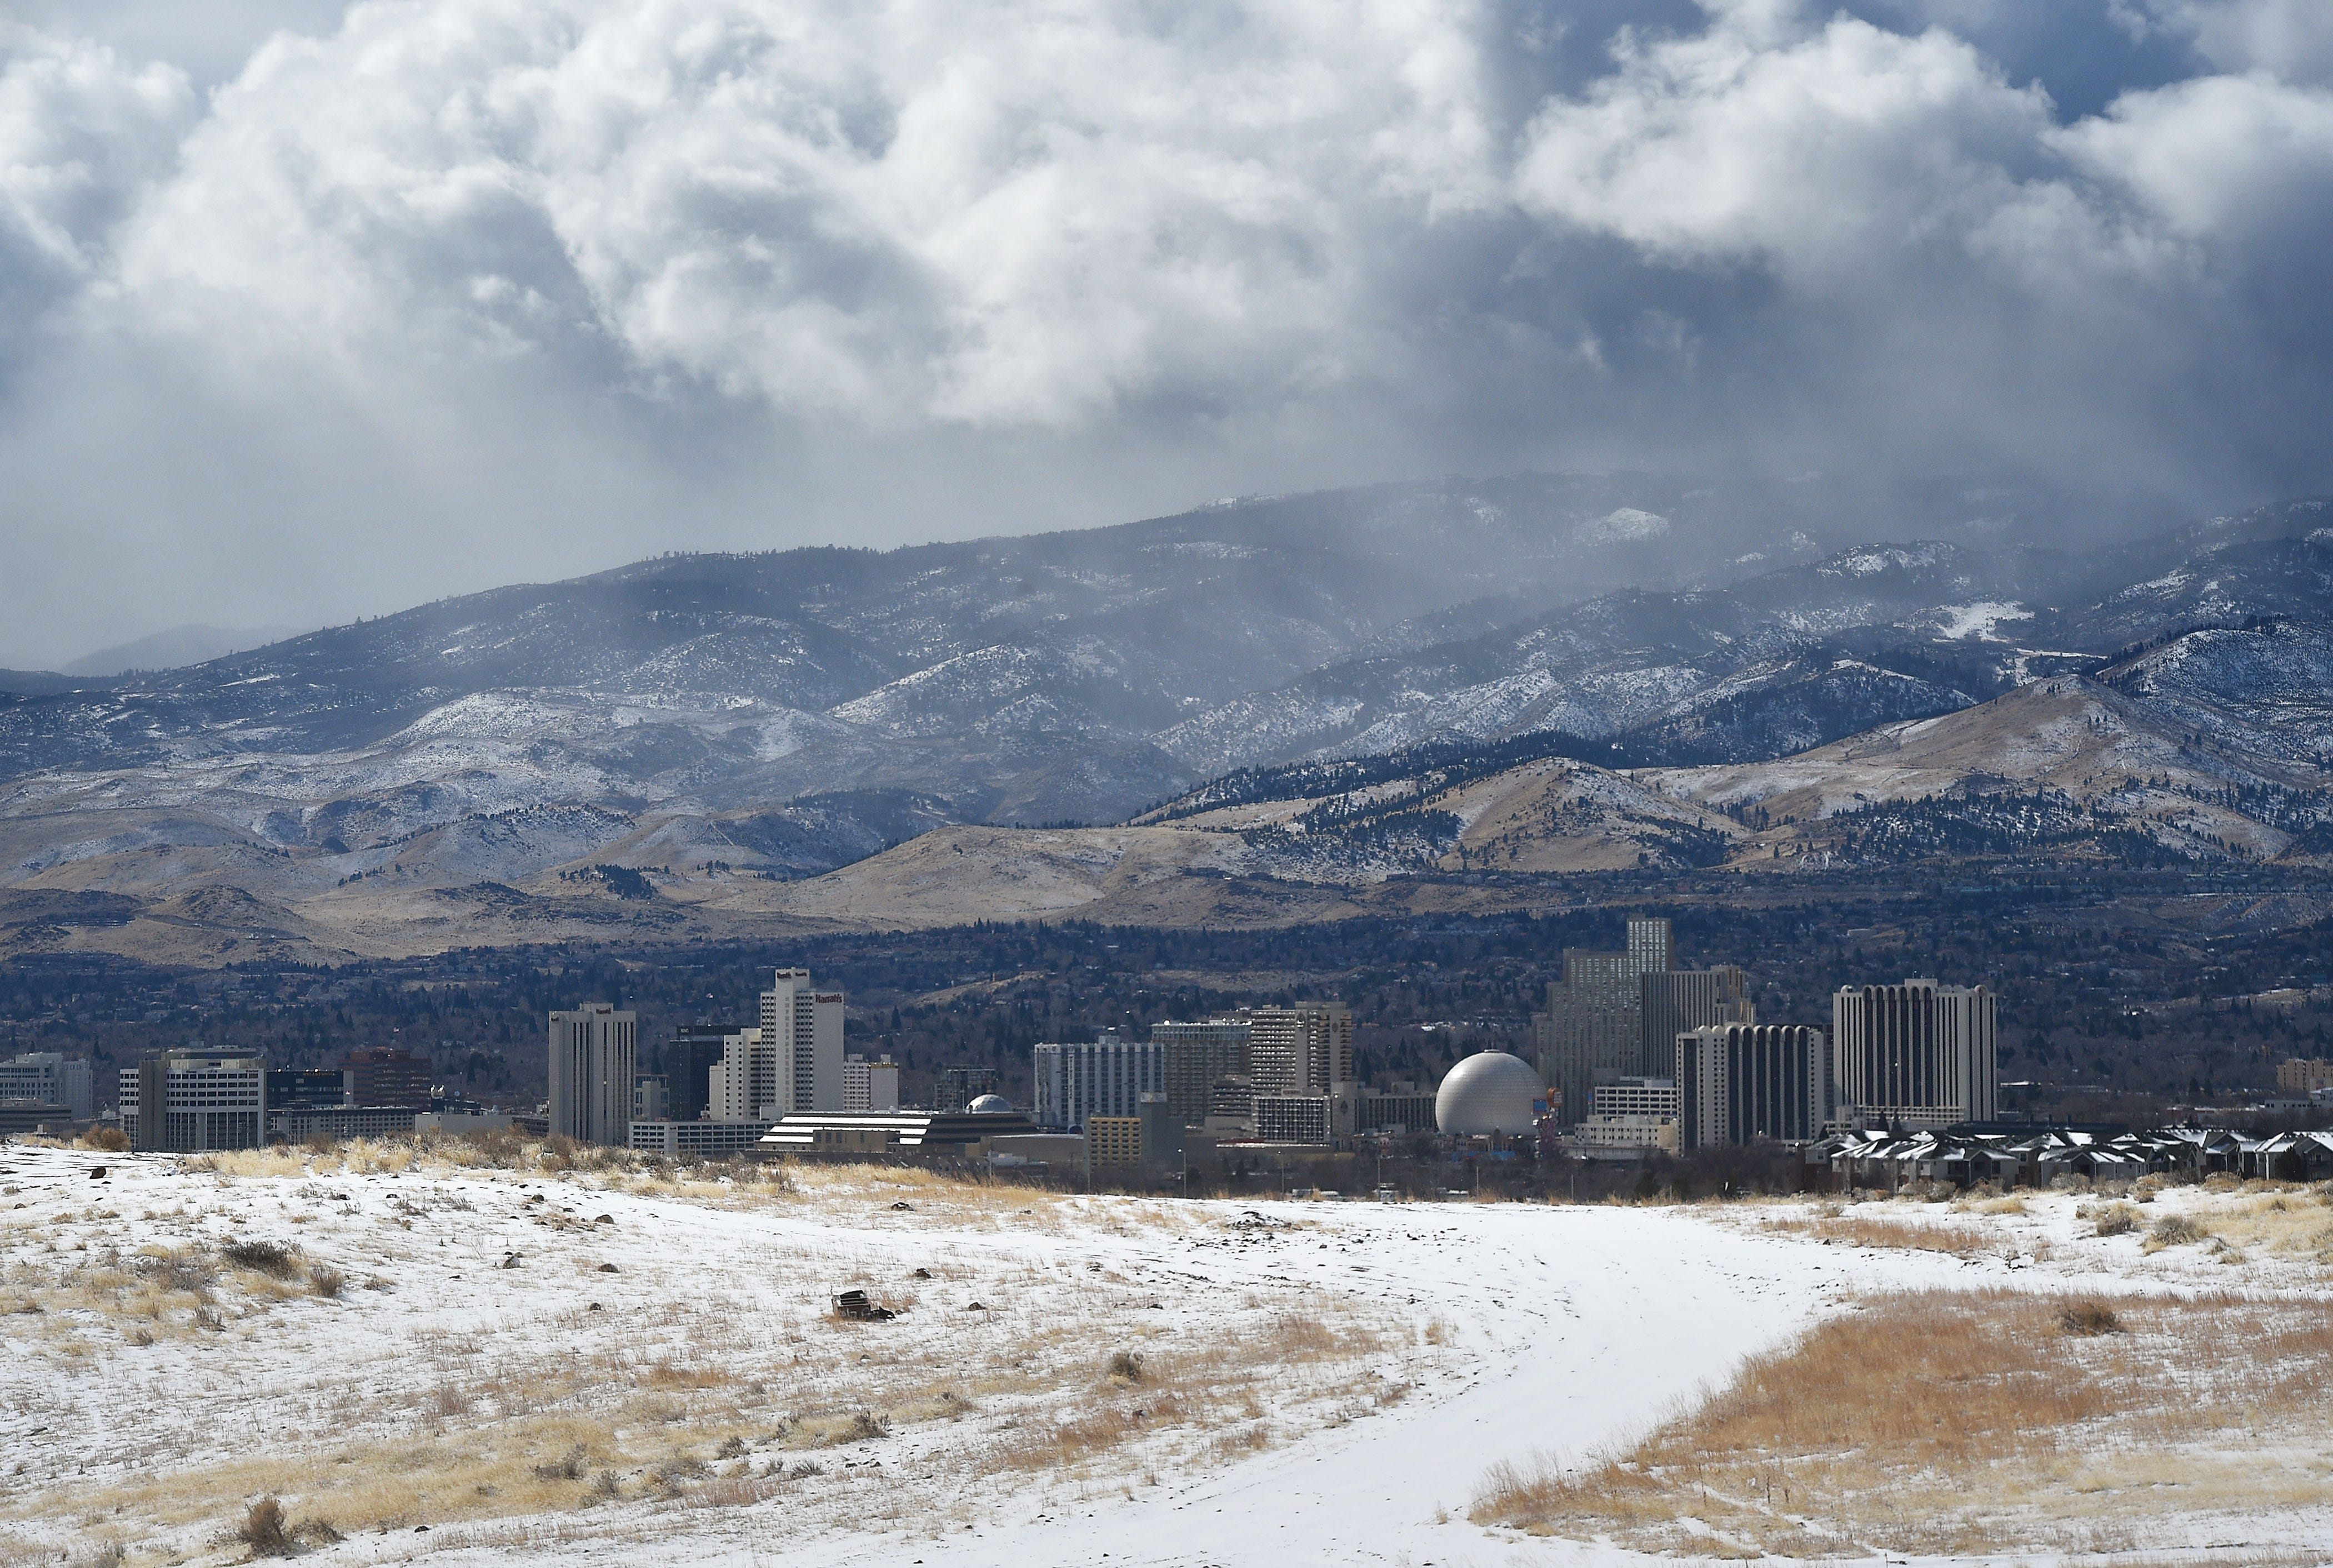 Storm waves to hit Reno-Tahoe this week starting Tuesday, forecasters say